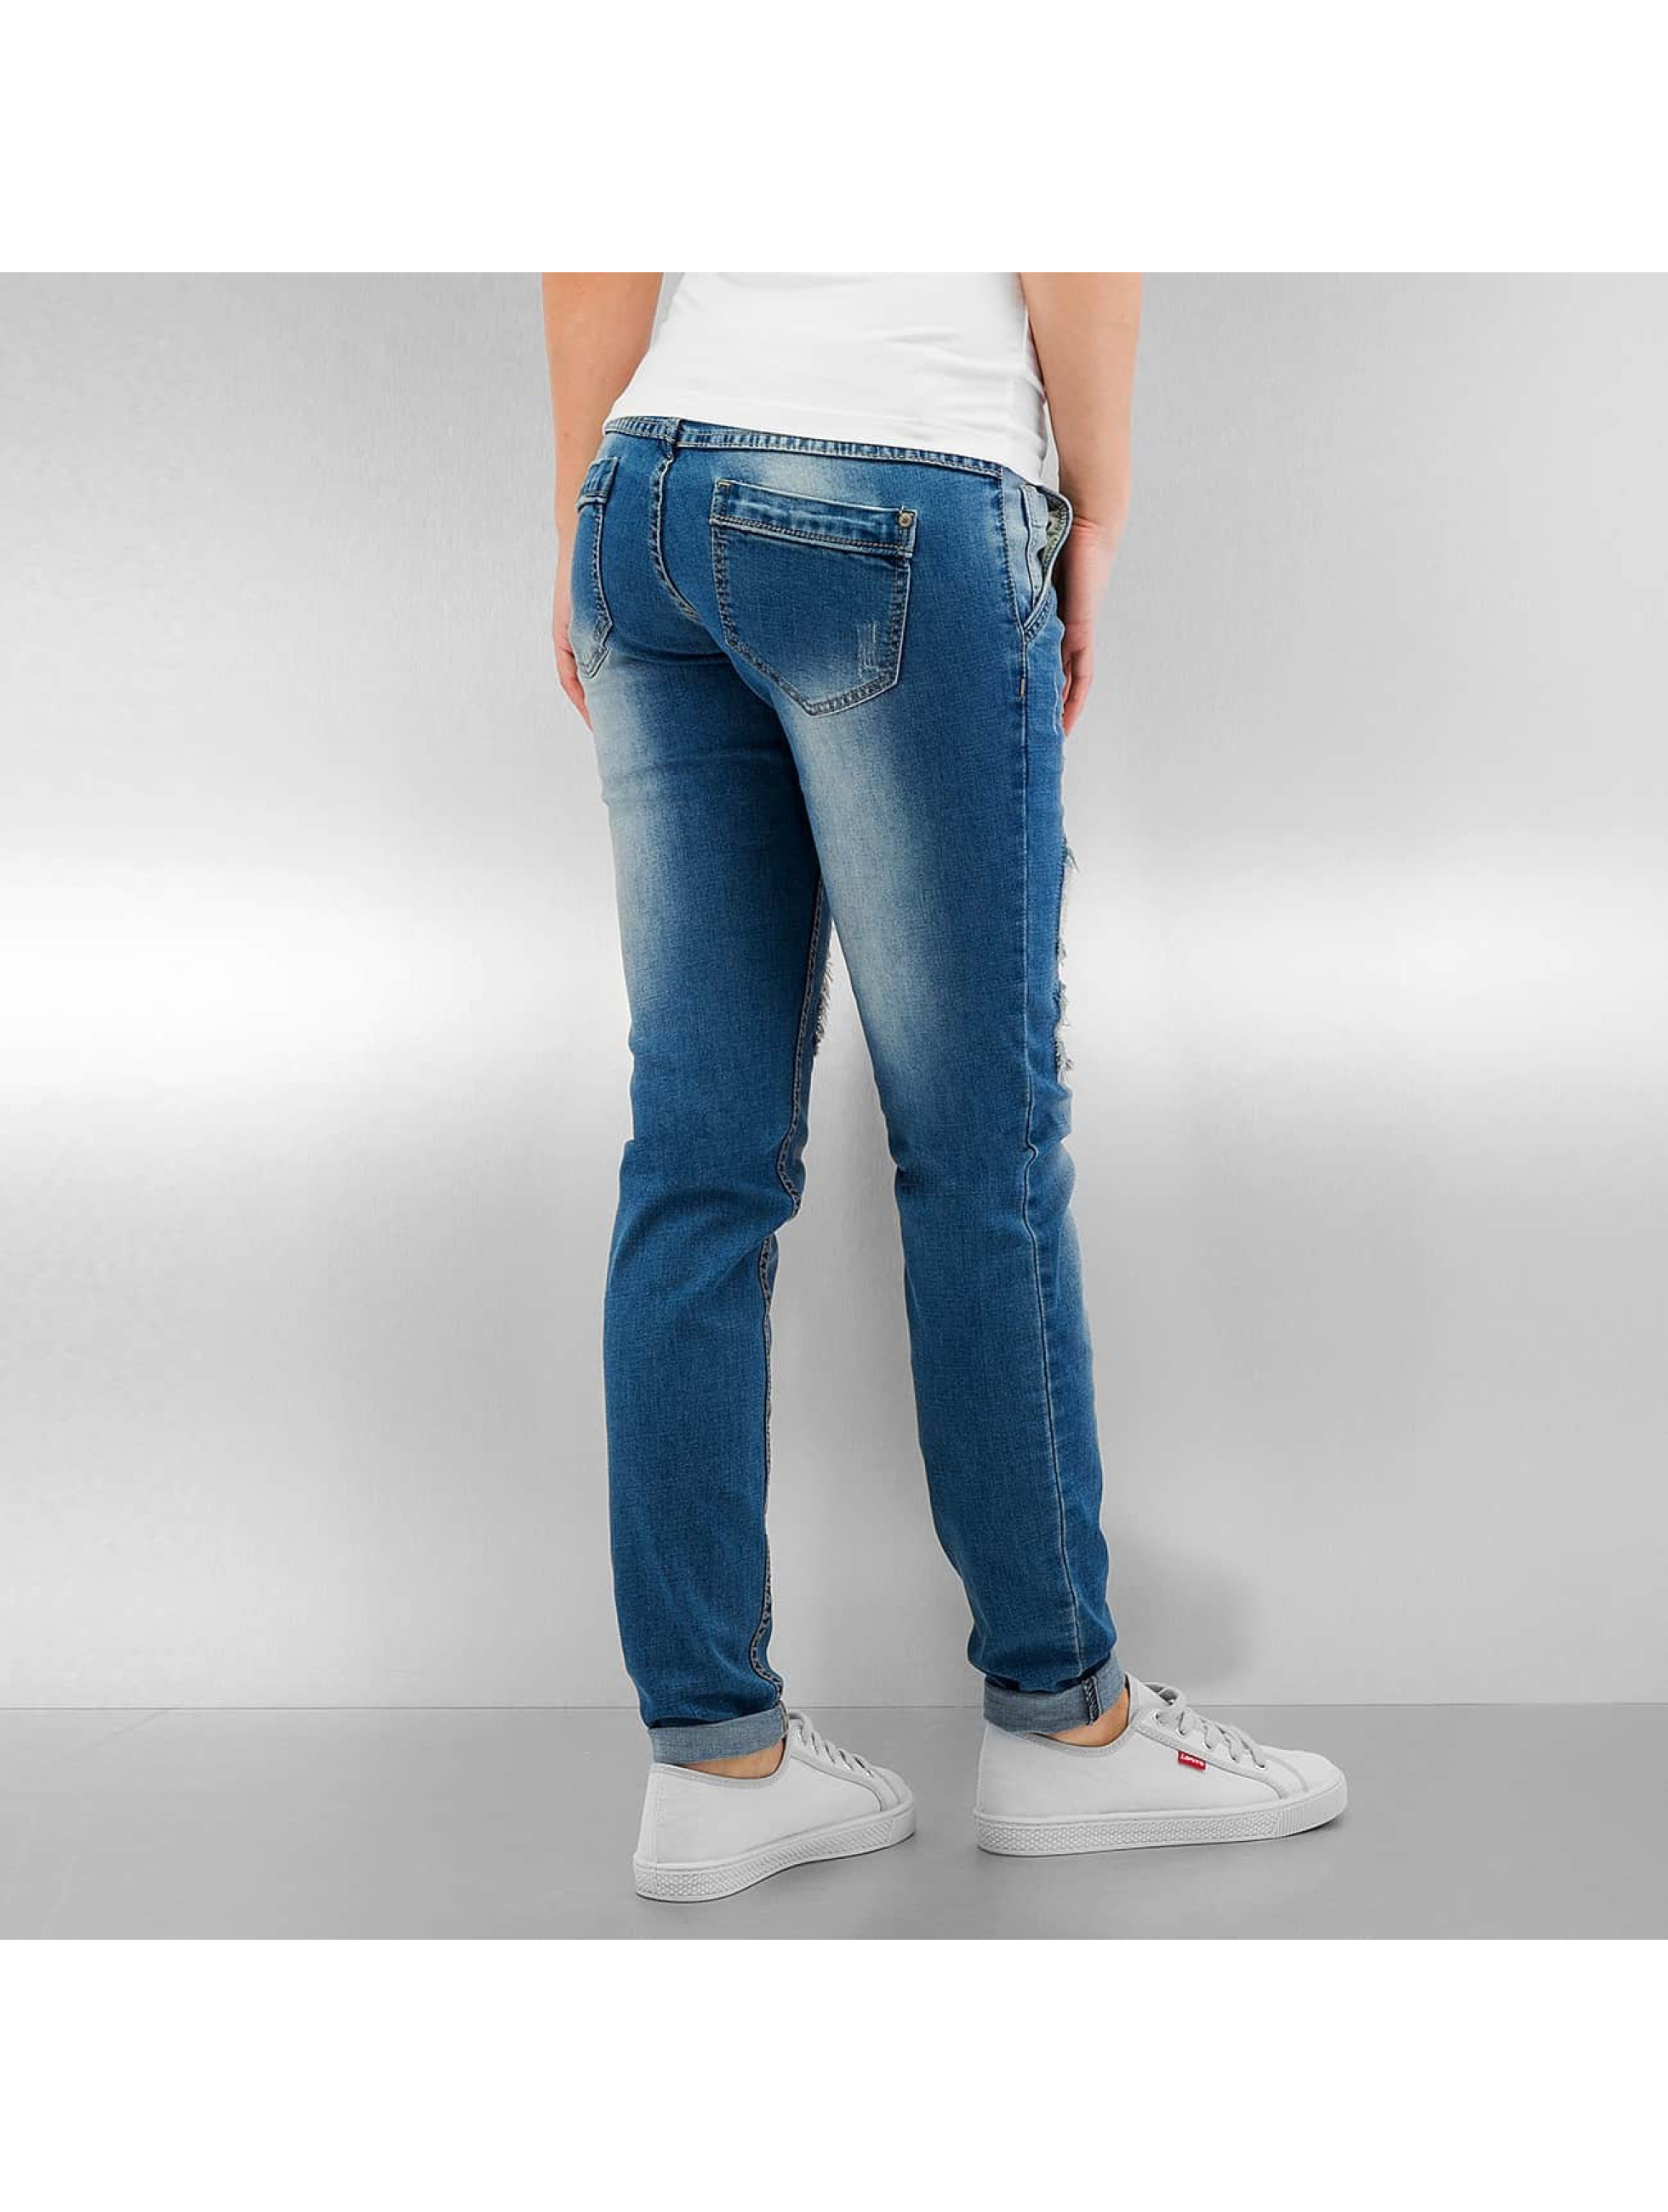 Sublevel Skinny Jeans Daisy blue